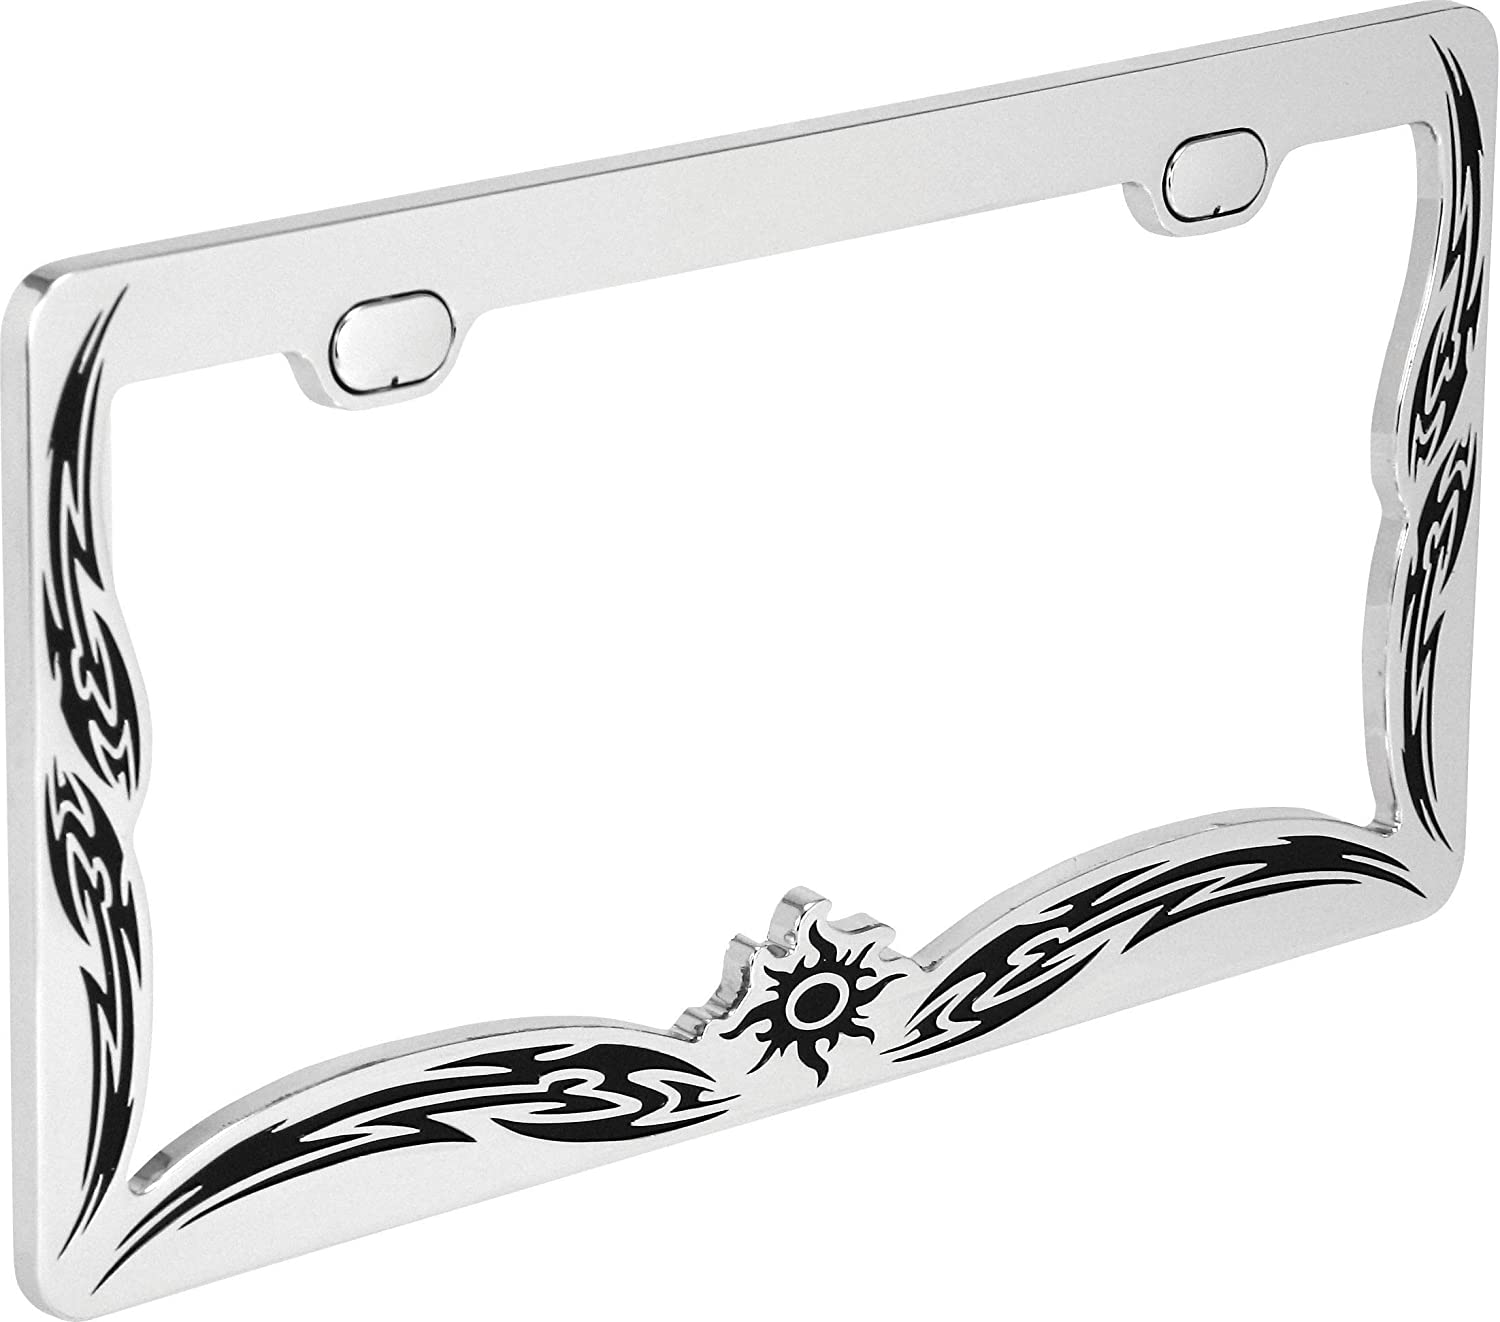 Bell Automotive 22-1-46163-8 Universal Tribal Design License Plate Frame